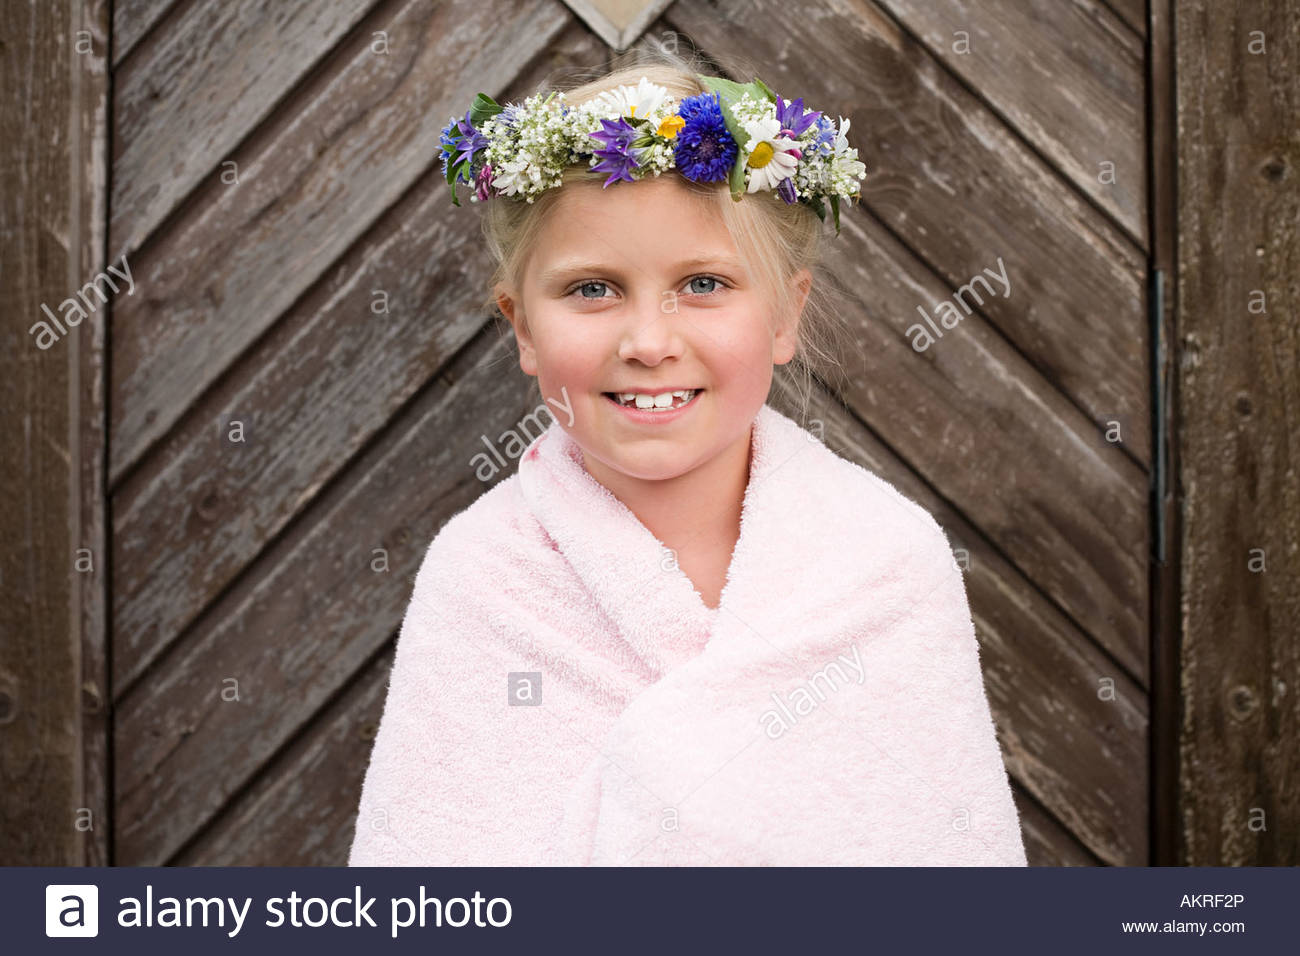 A girl wearing a garland of flowers - Stock Image